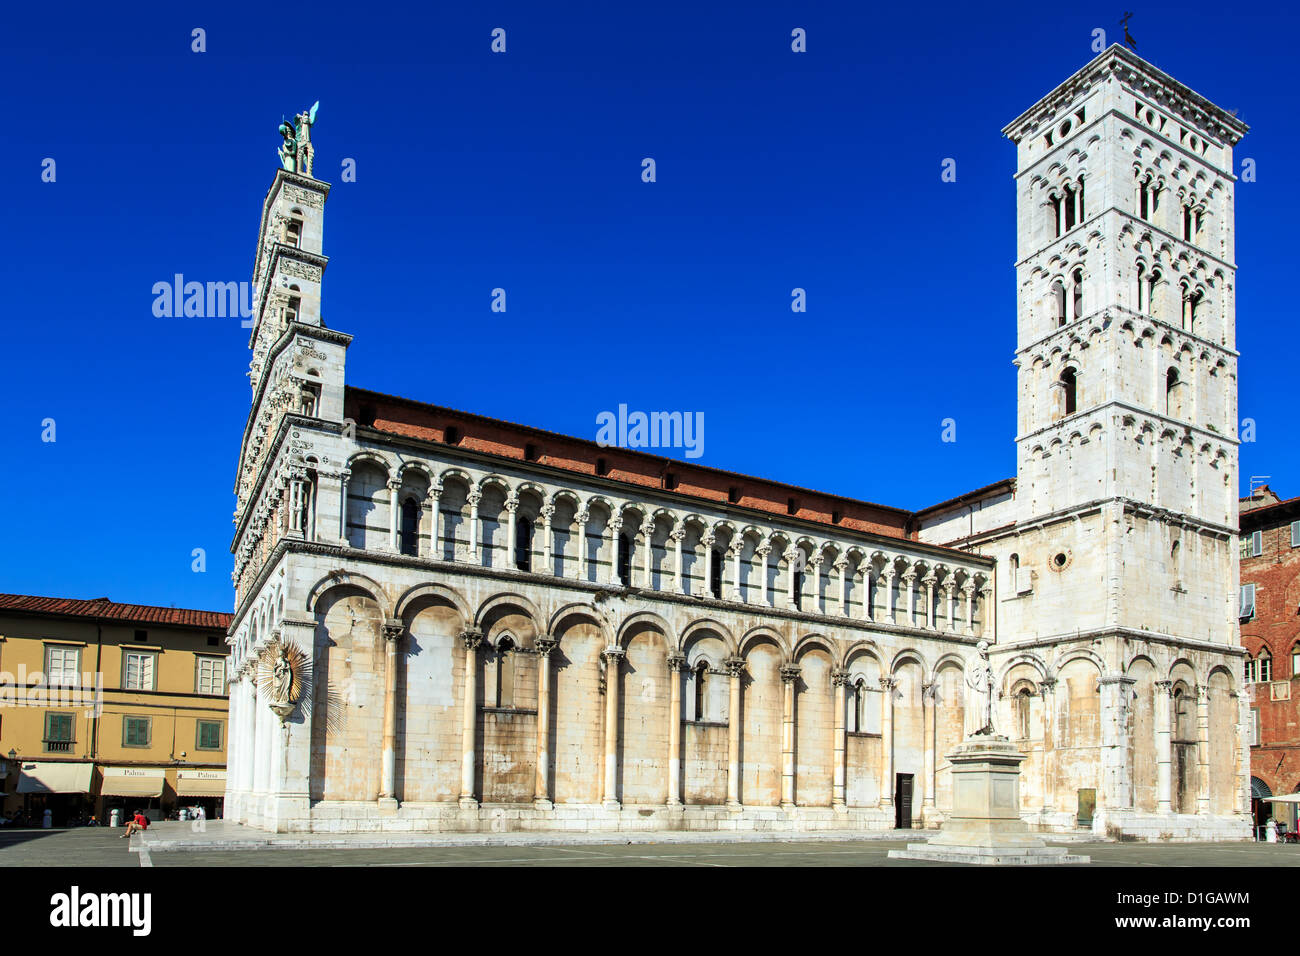 San Michele in Foro church, Lucca, Tuscany, Italy - Stock Image